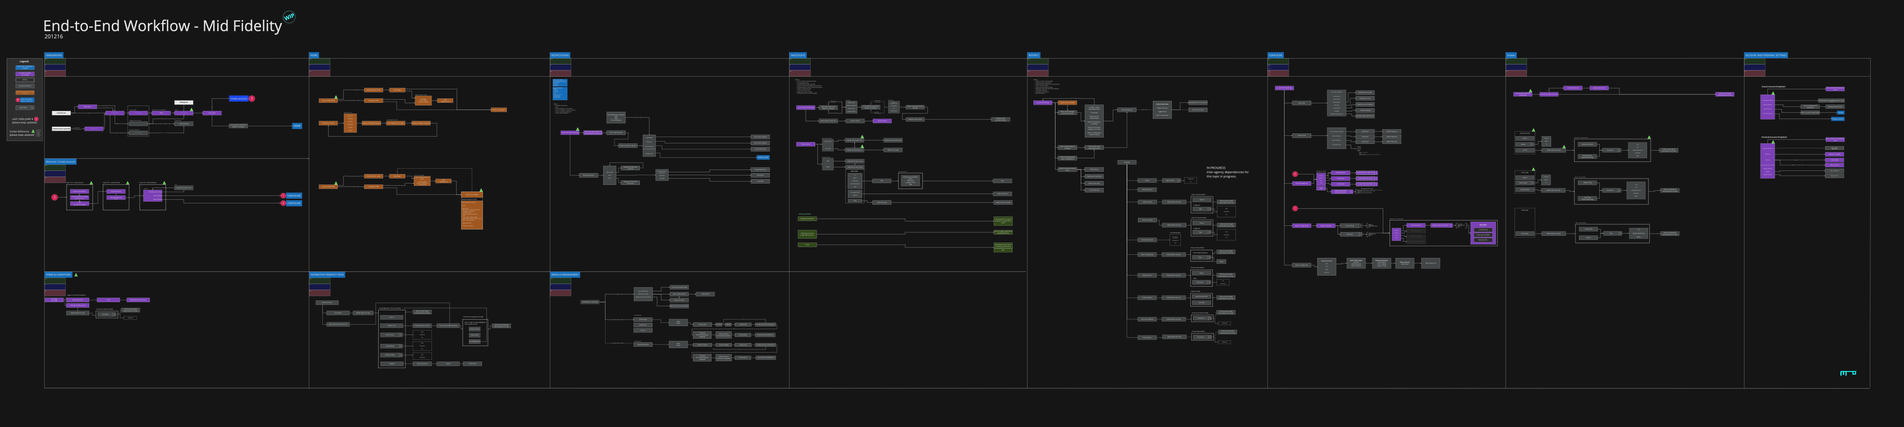 End-to-End Workflow